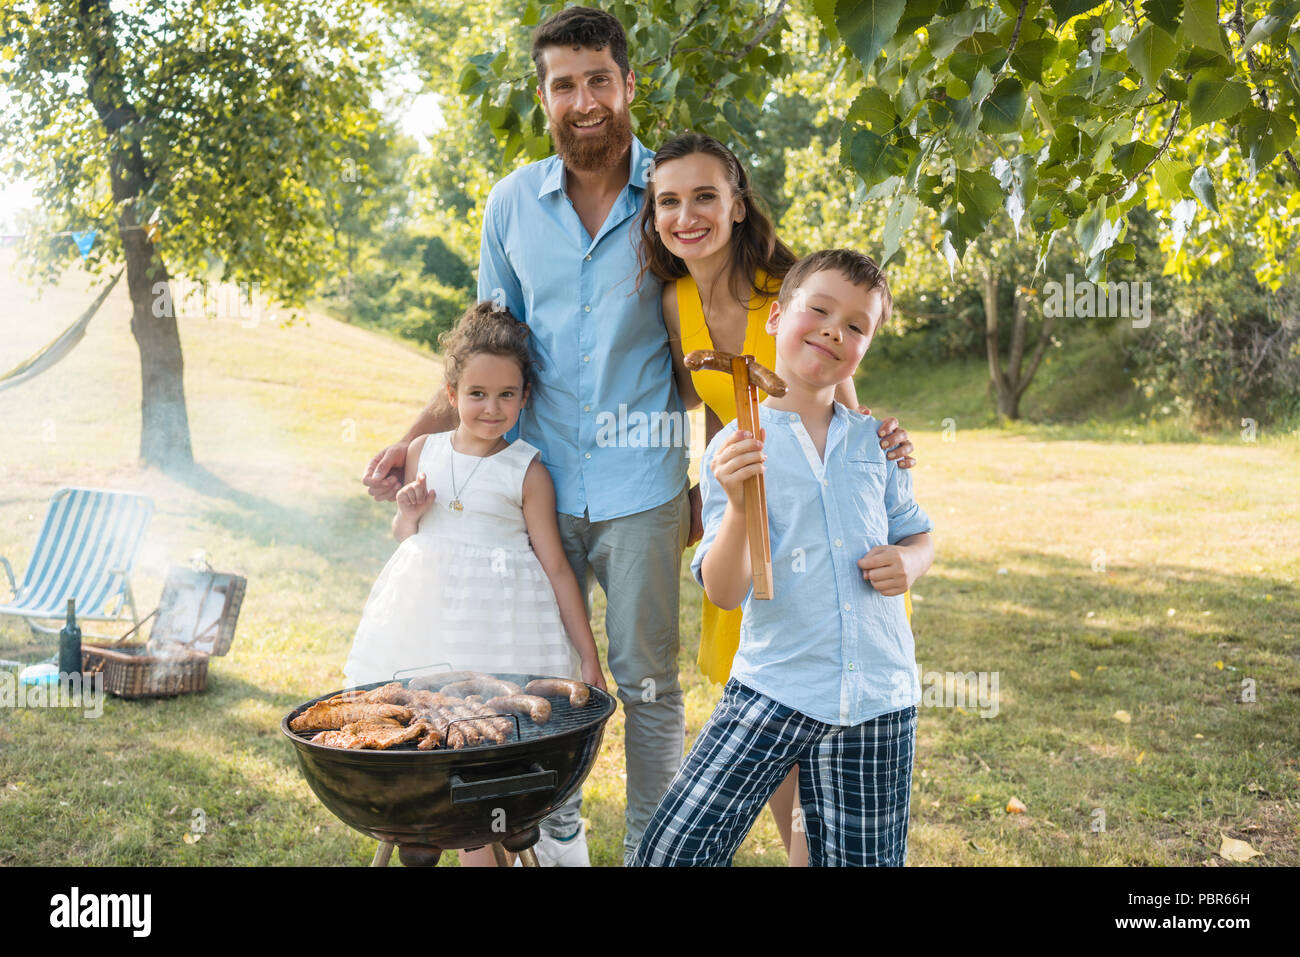 Portrait of happy family with two children standing outdoors - Stock Image